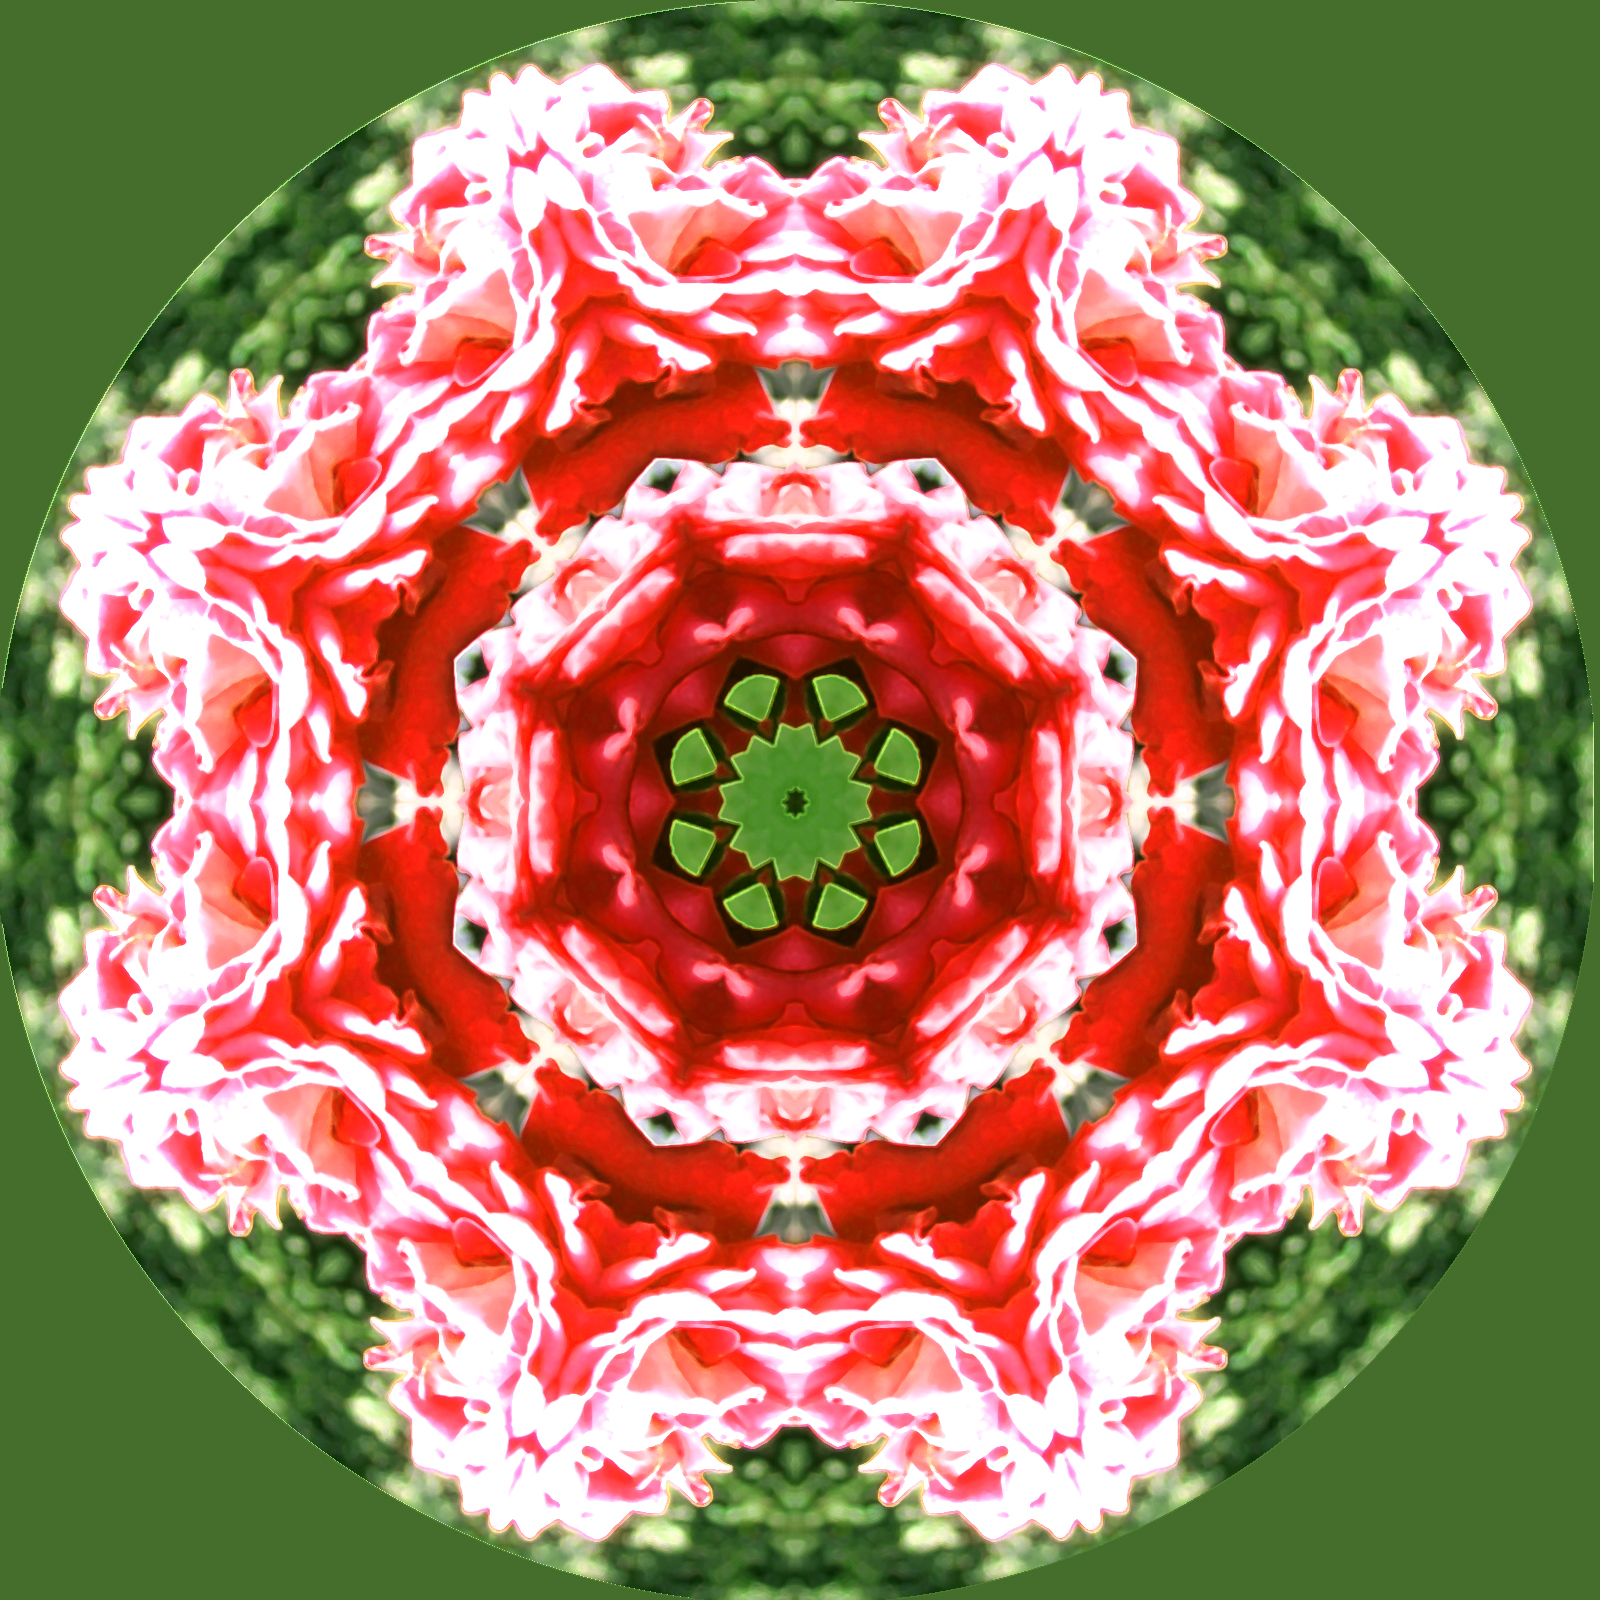 kaleidoscope flower mandala, Ornament, Graphic, Kaleidoscope, Lace, HQ Photo